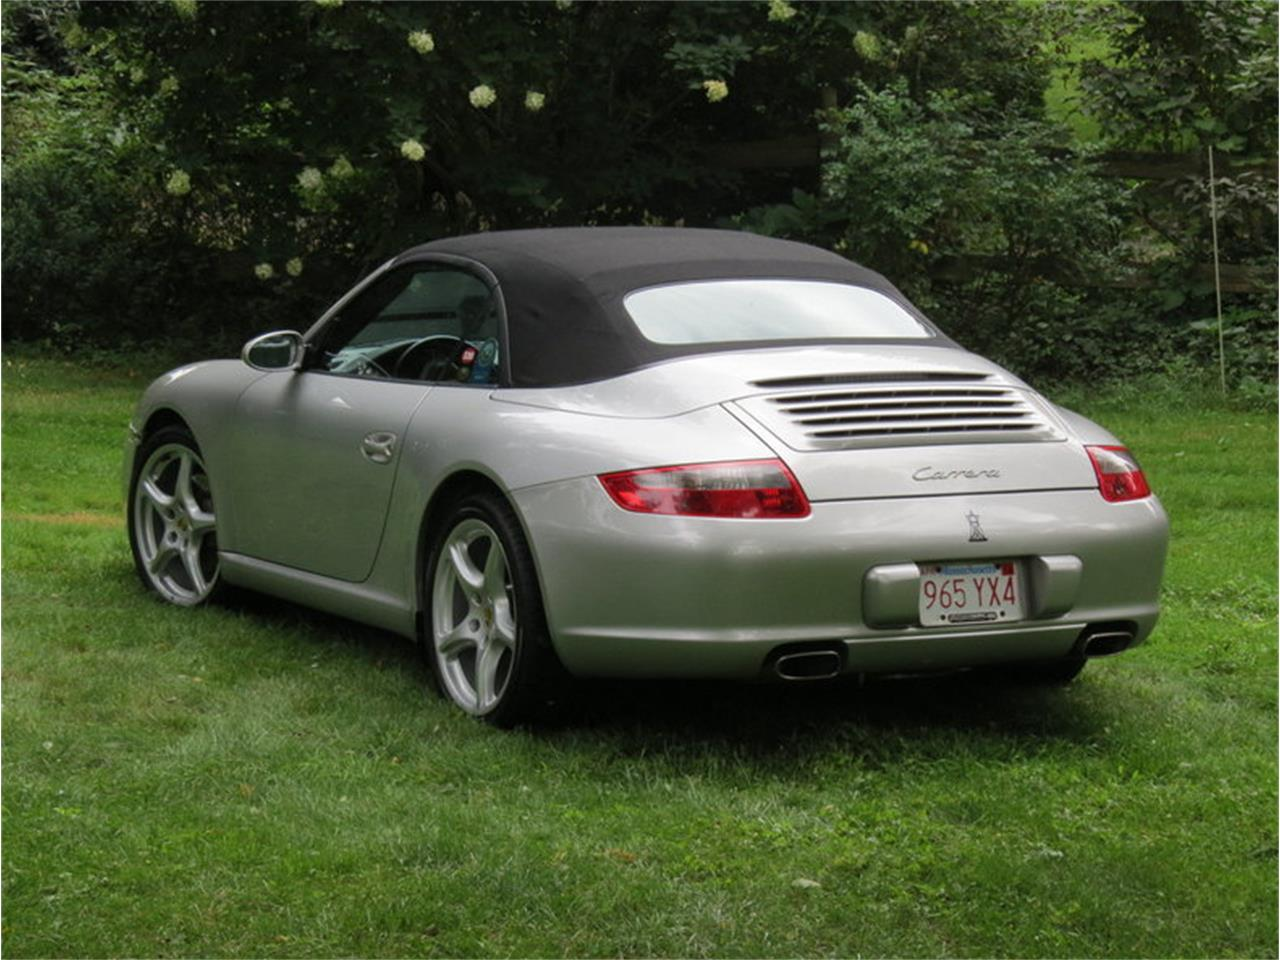 Large Picture of '05 Porsche 911 Carrera located in North Andover Massachusetts - $29,950.00 - JD2Q